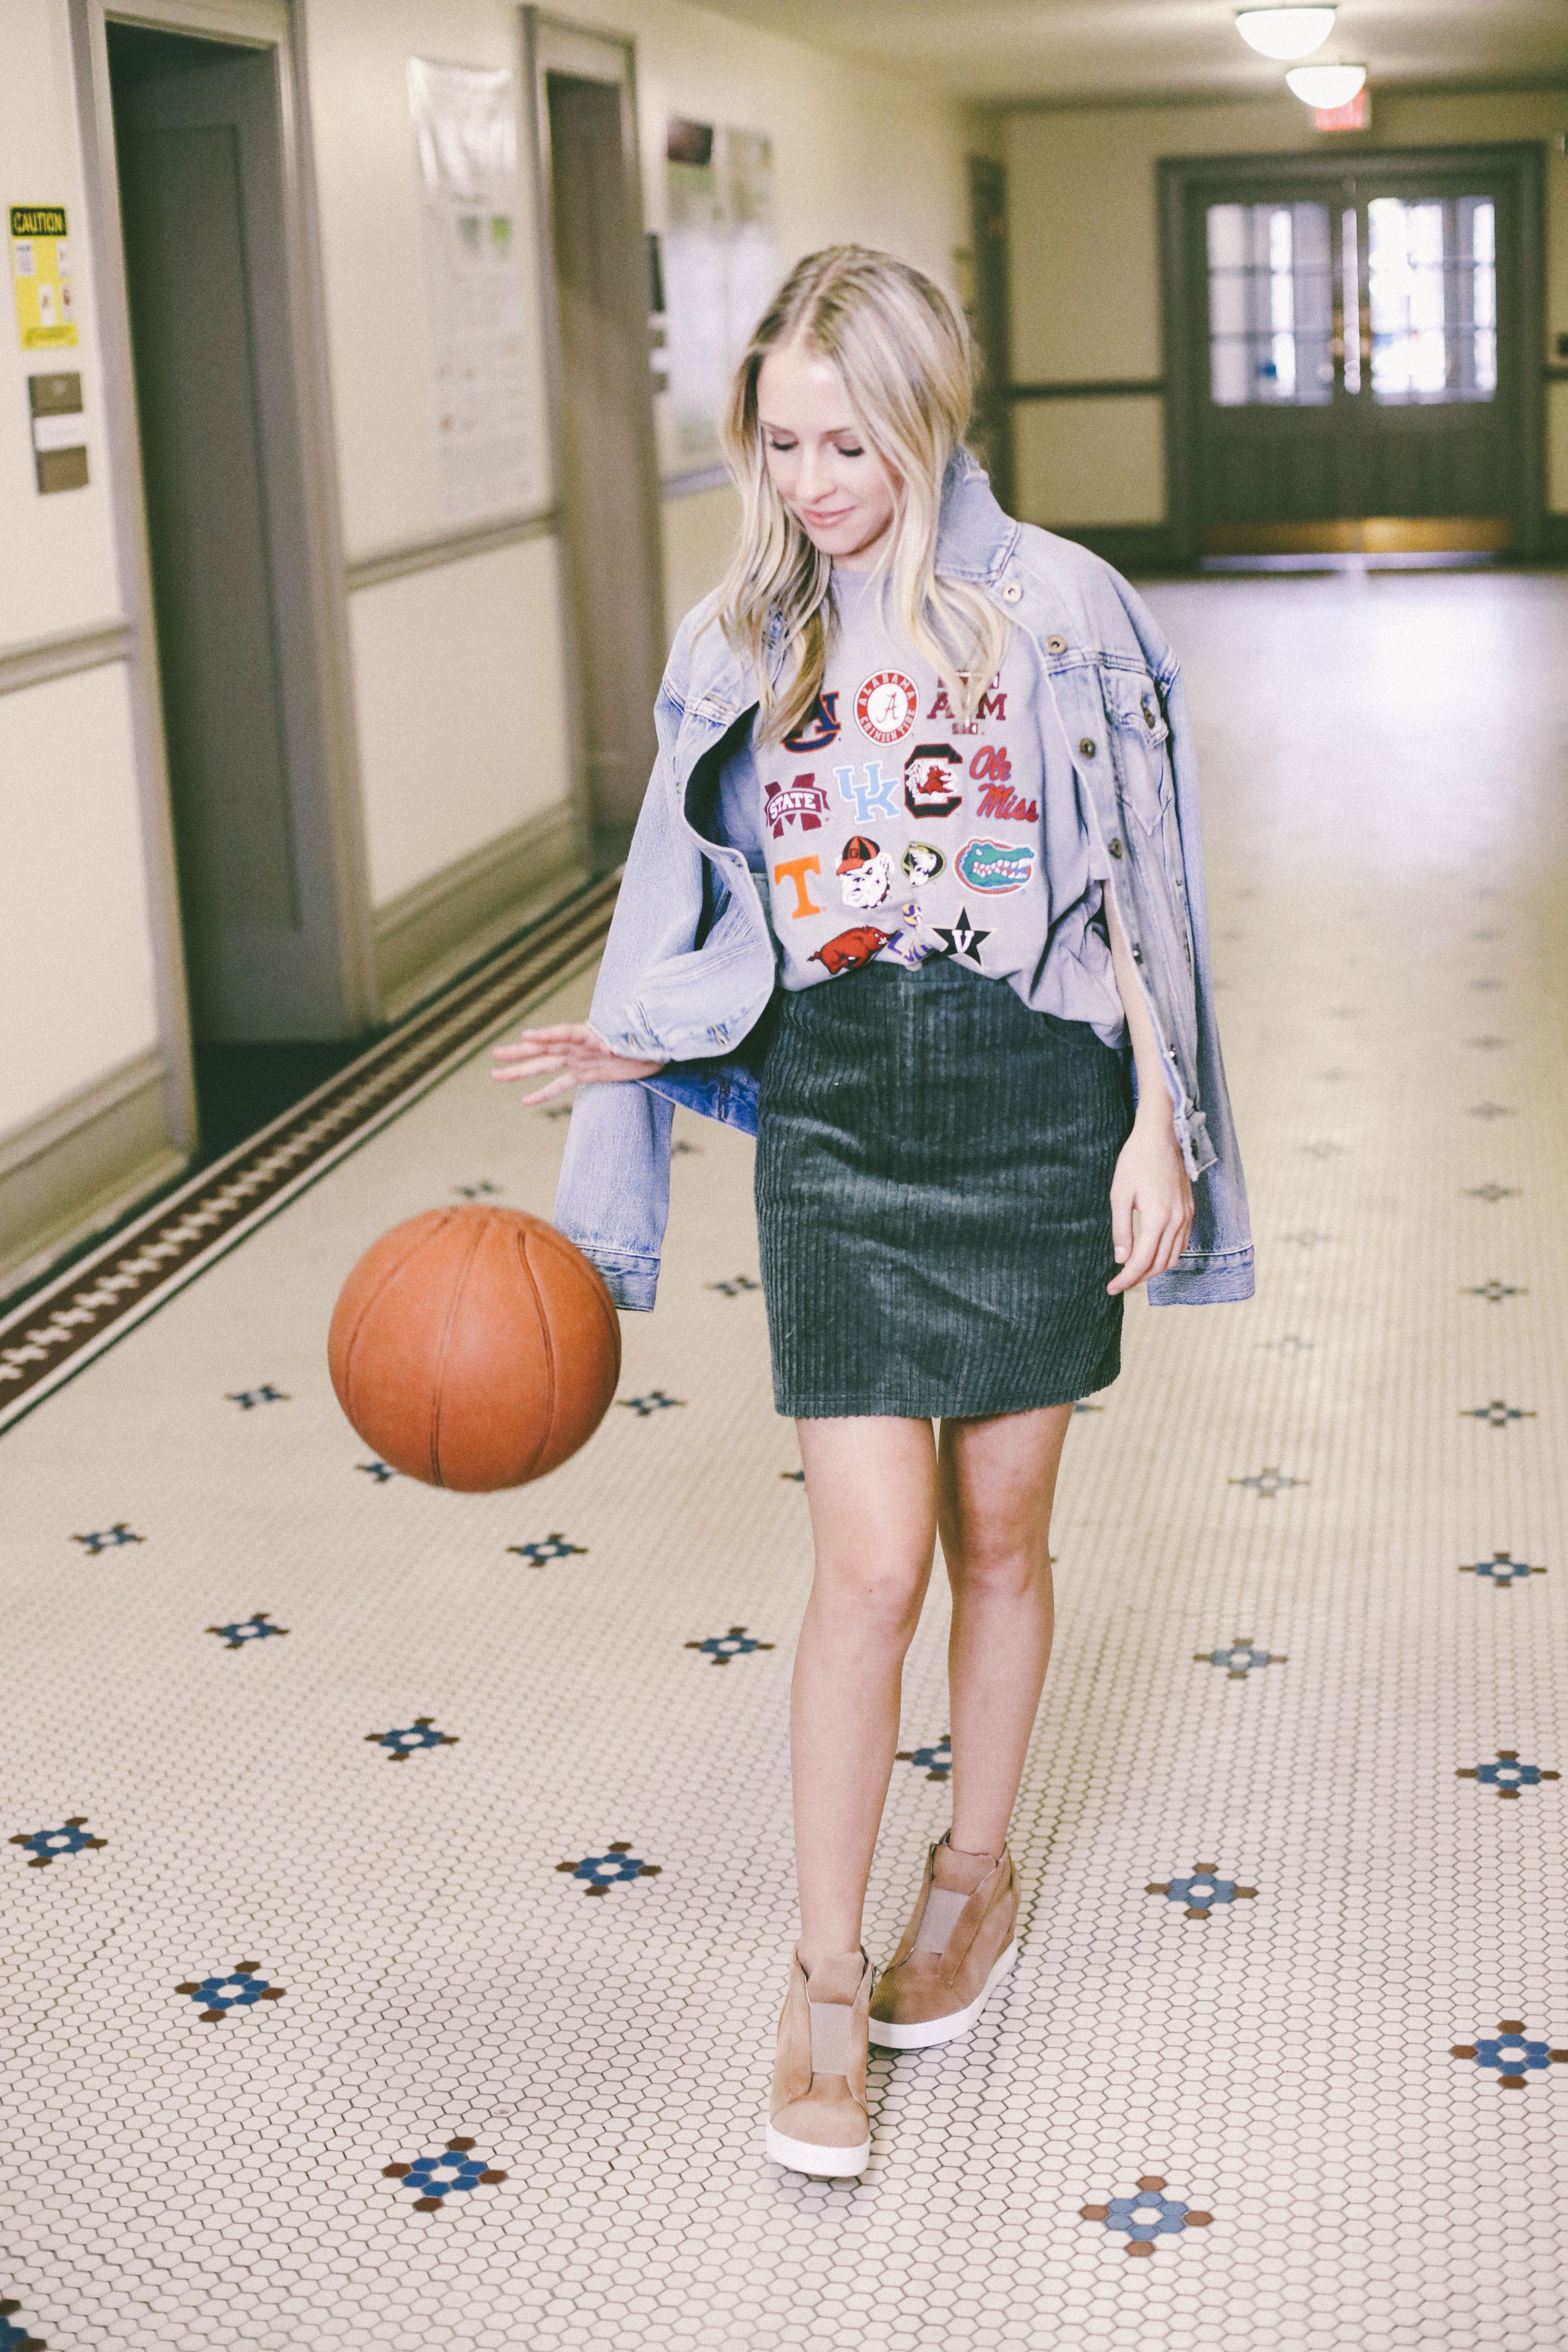 Pin by Charlie Southern on basketball is my favorite sport